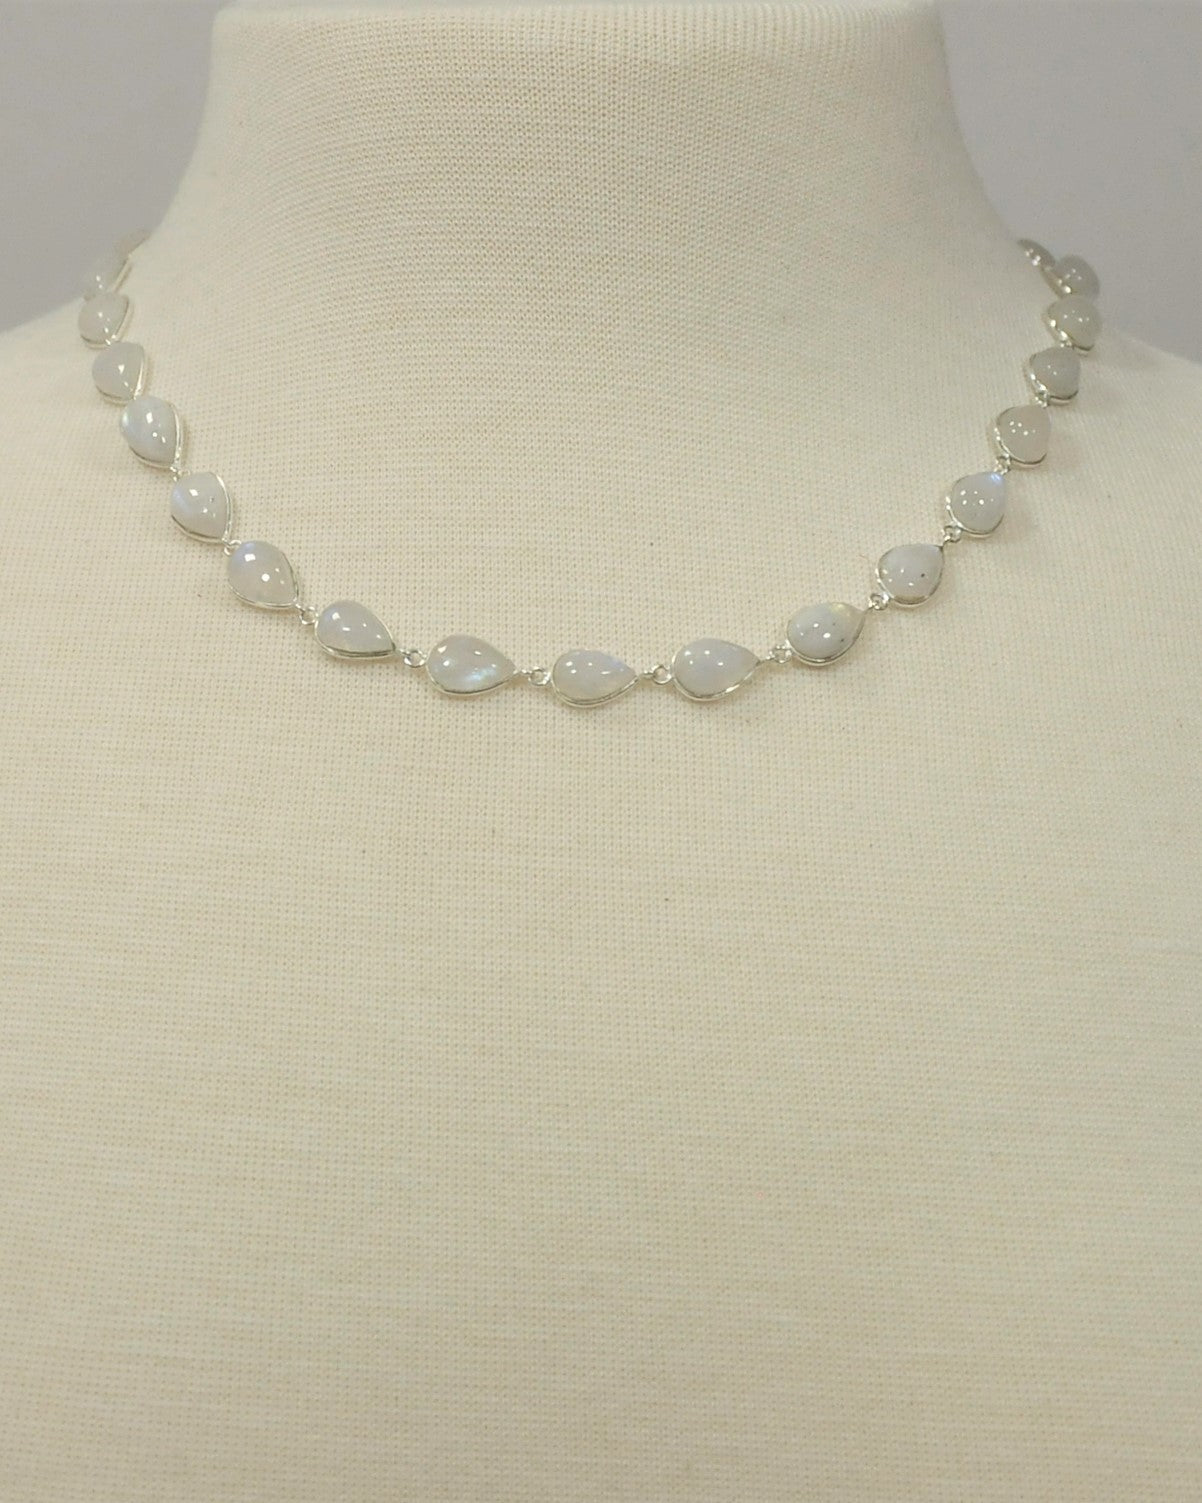 Splendor Moonstone Sterling Silver Station Necklace